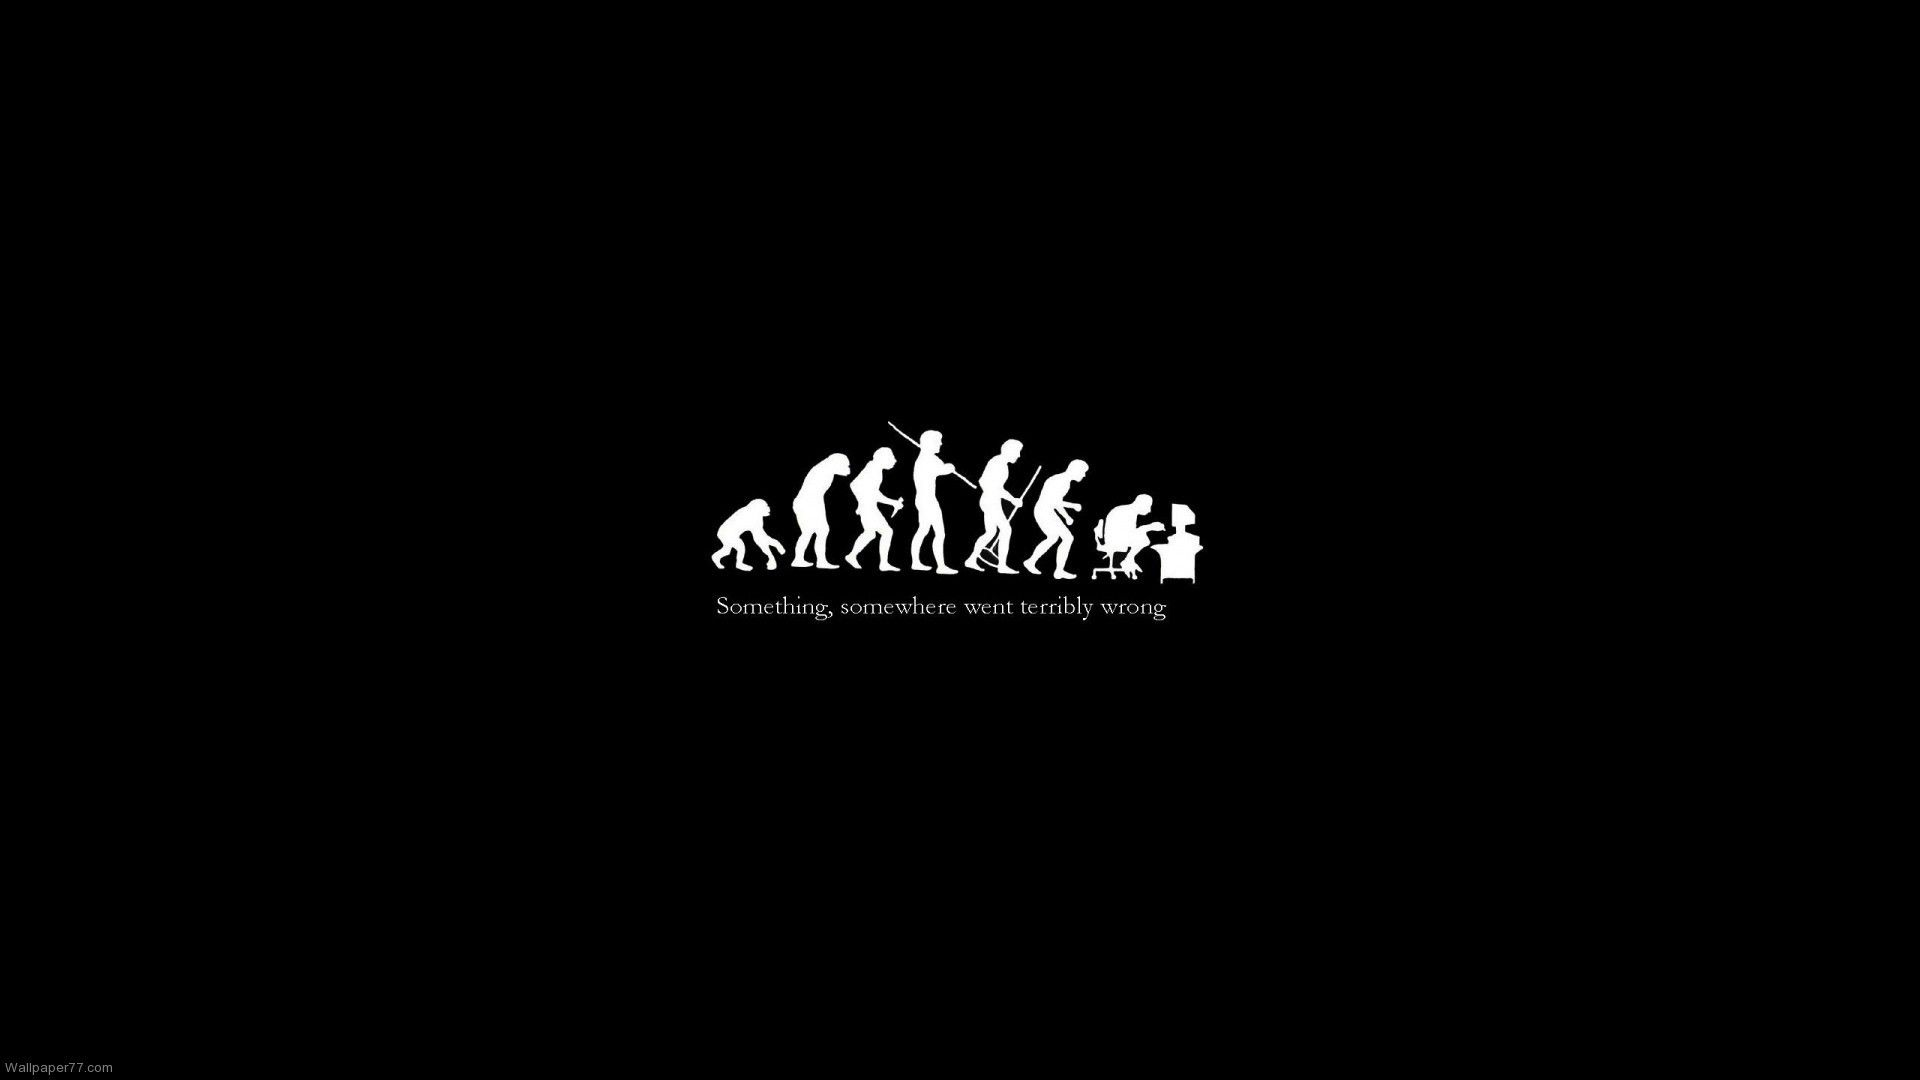 Funny Stickman Wallpapers 1920x1080 Windows 10 In 2019